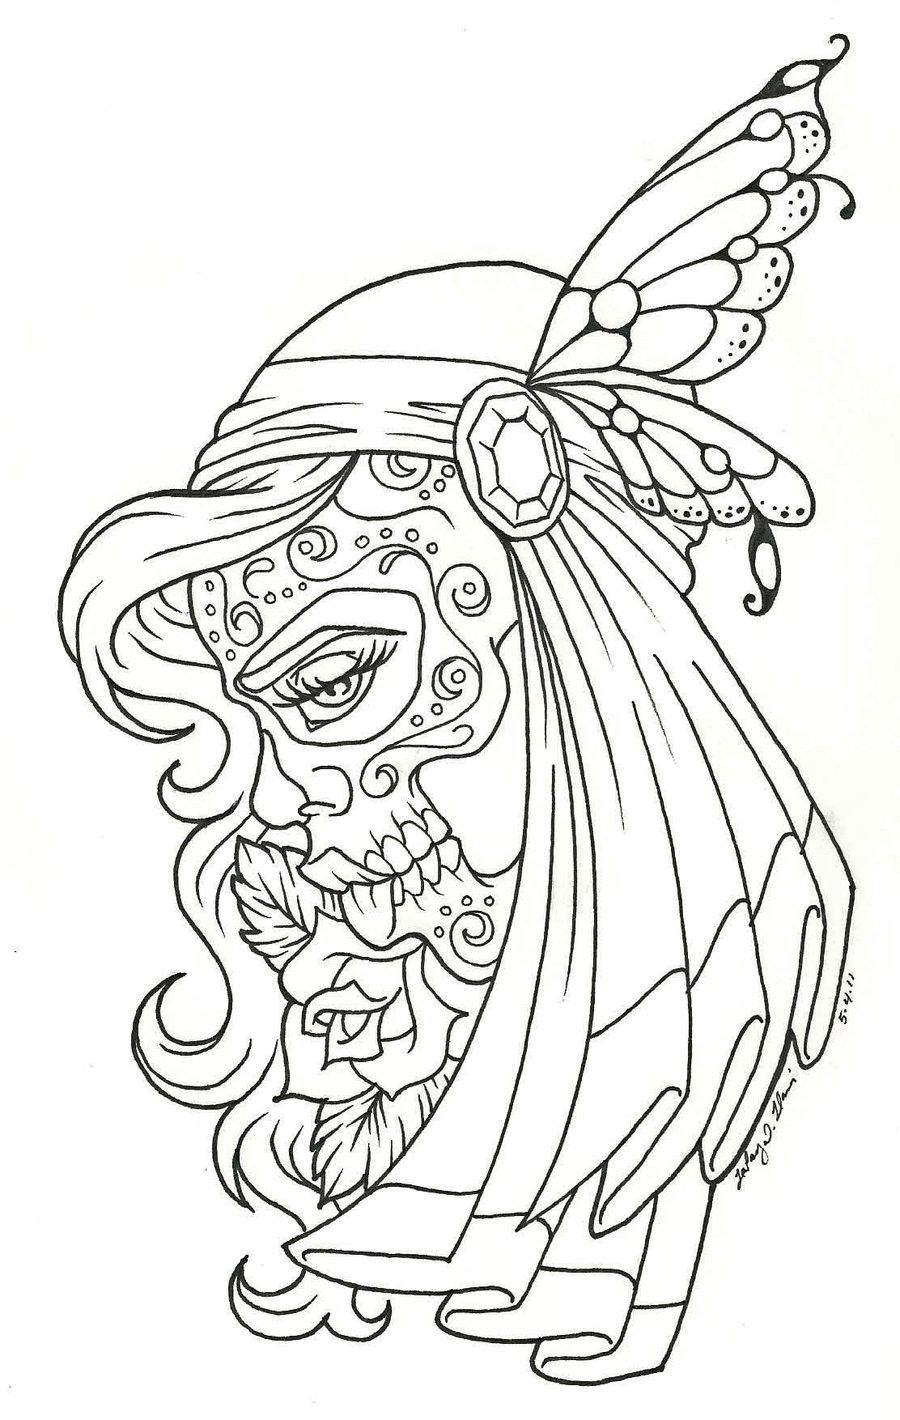 900x1420 Day Of The Dead Coloring Pages Free Dessin Dia De